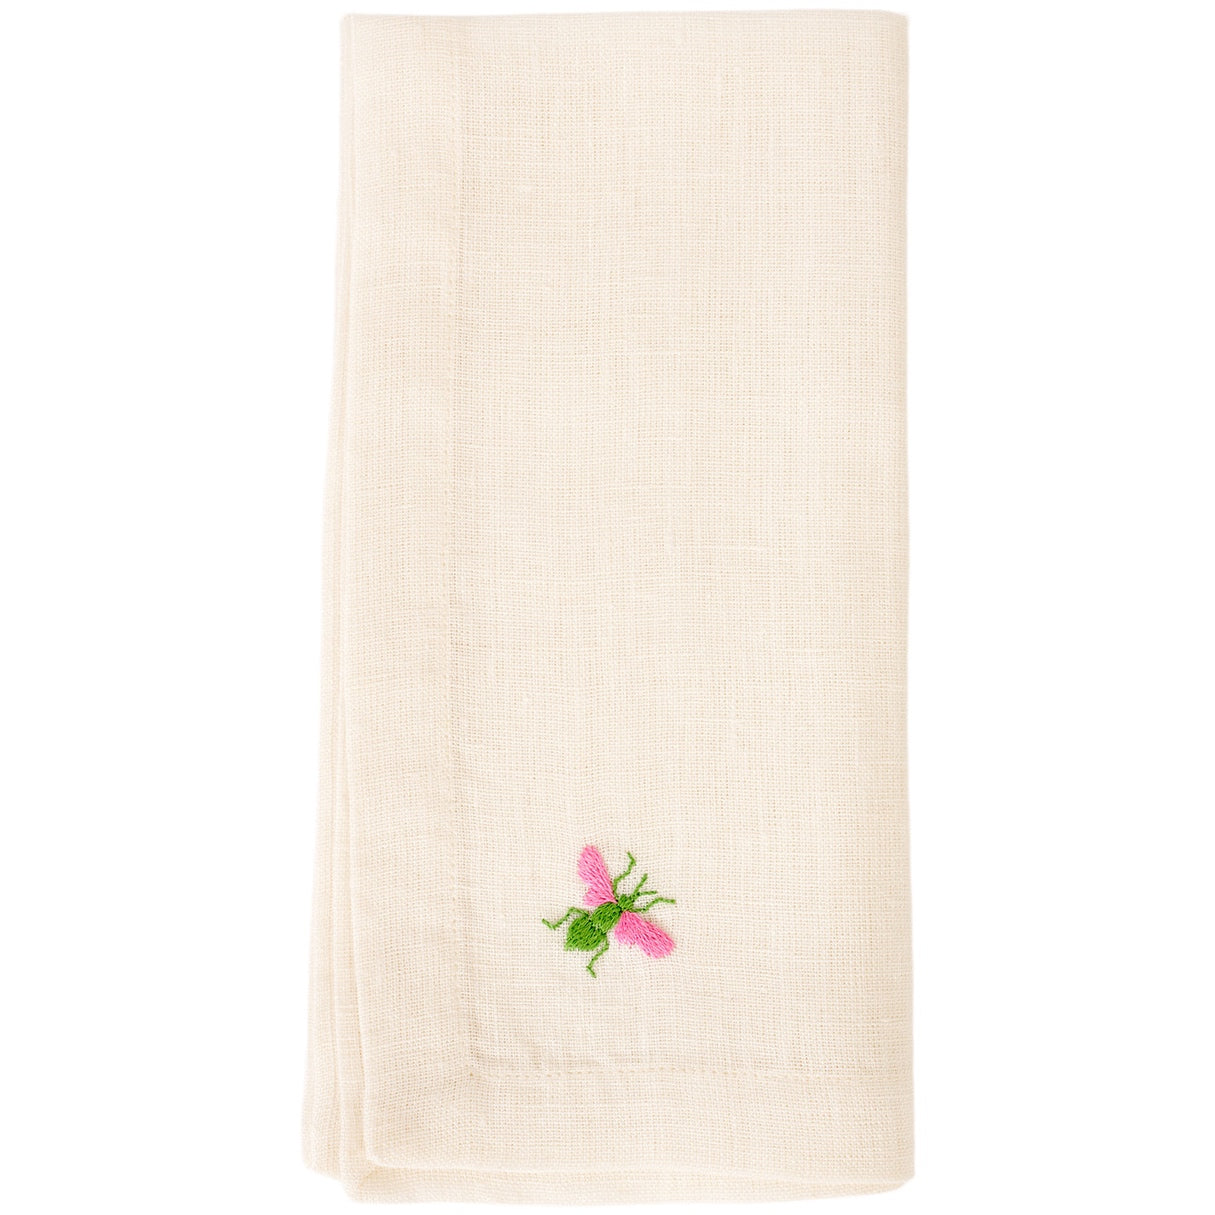 Bumble Bee Napkin - Green/Pink